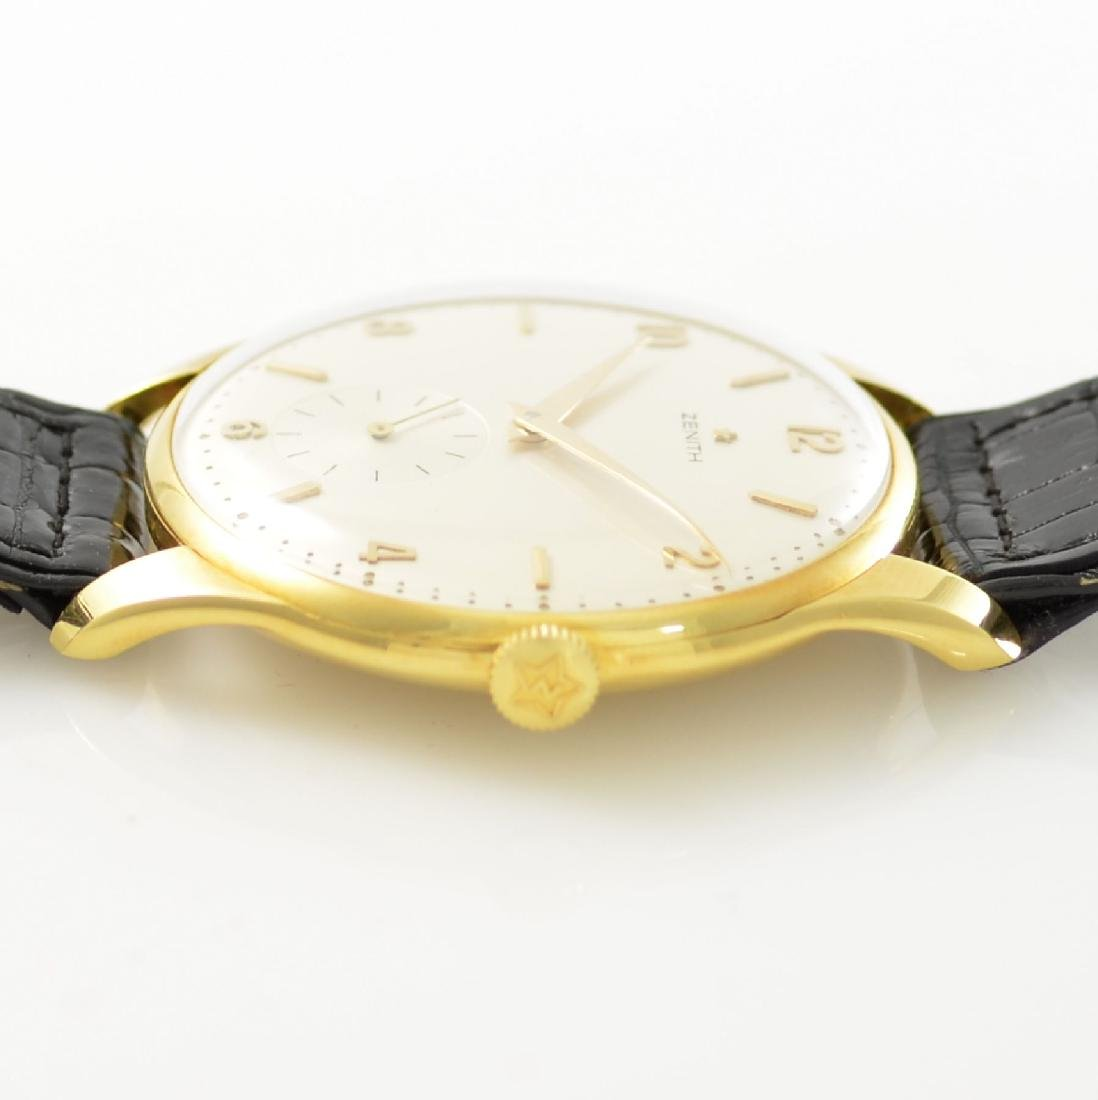 ZENITH oversized 18k yellow gold gents wristwatch - 6